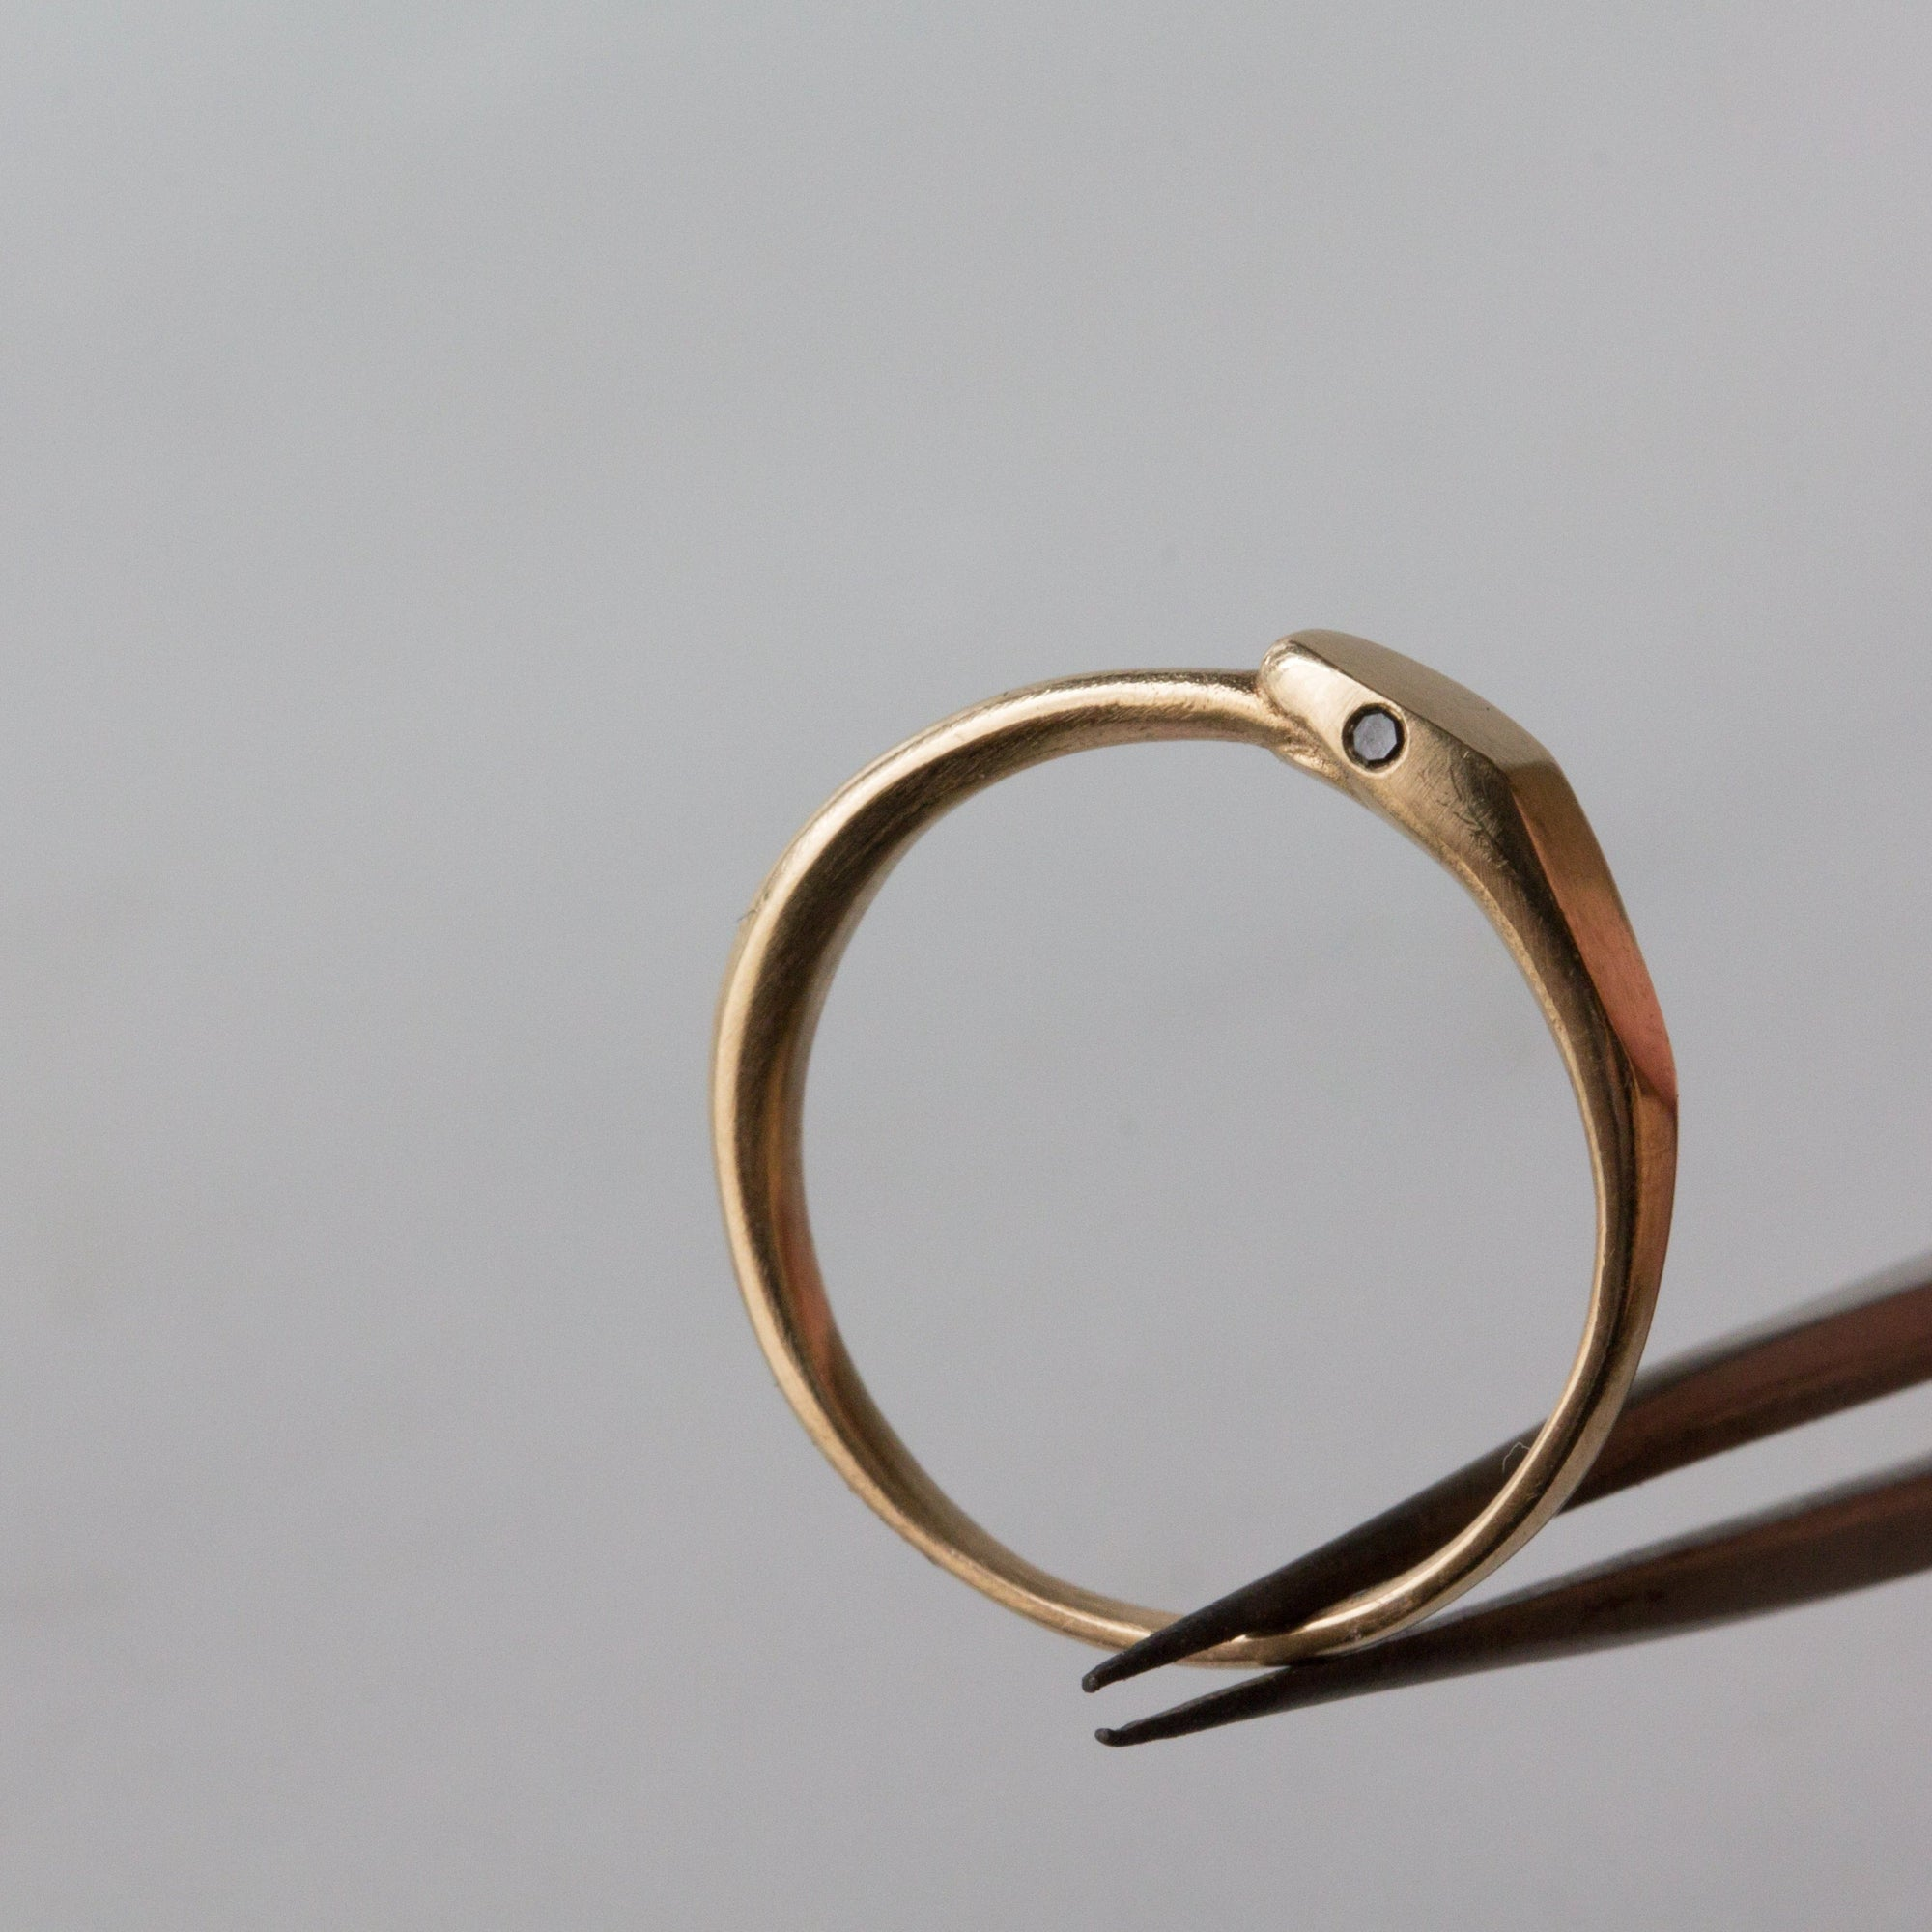 kelly star lannen, 12th house jewelry, ceremonial and celestial jewelry, sustainable jewelry, jewelry sculptor in NYC, handmade jewelry in NYC, ouroboros, snake ring, gold midi ring, bridesmaids gifts, wear with love